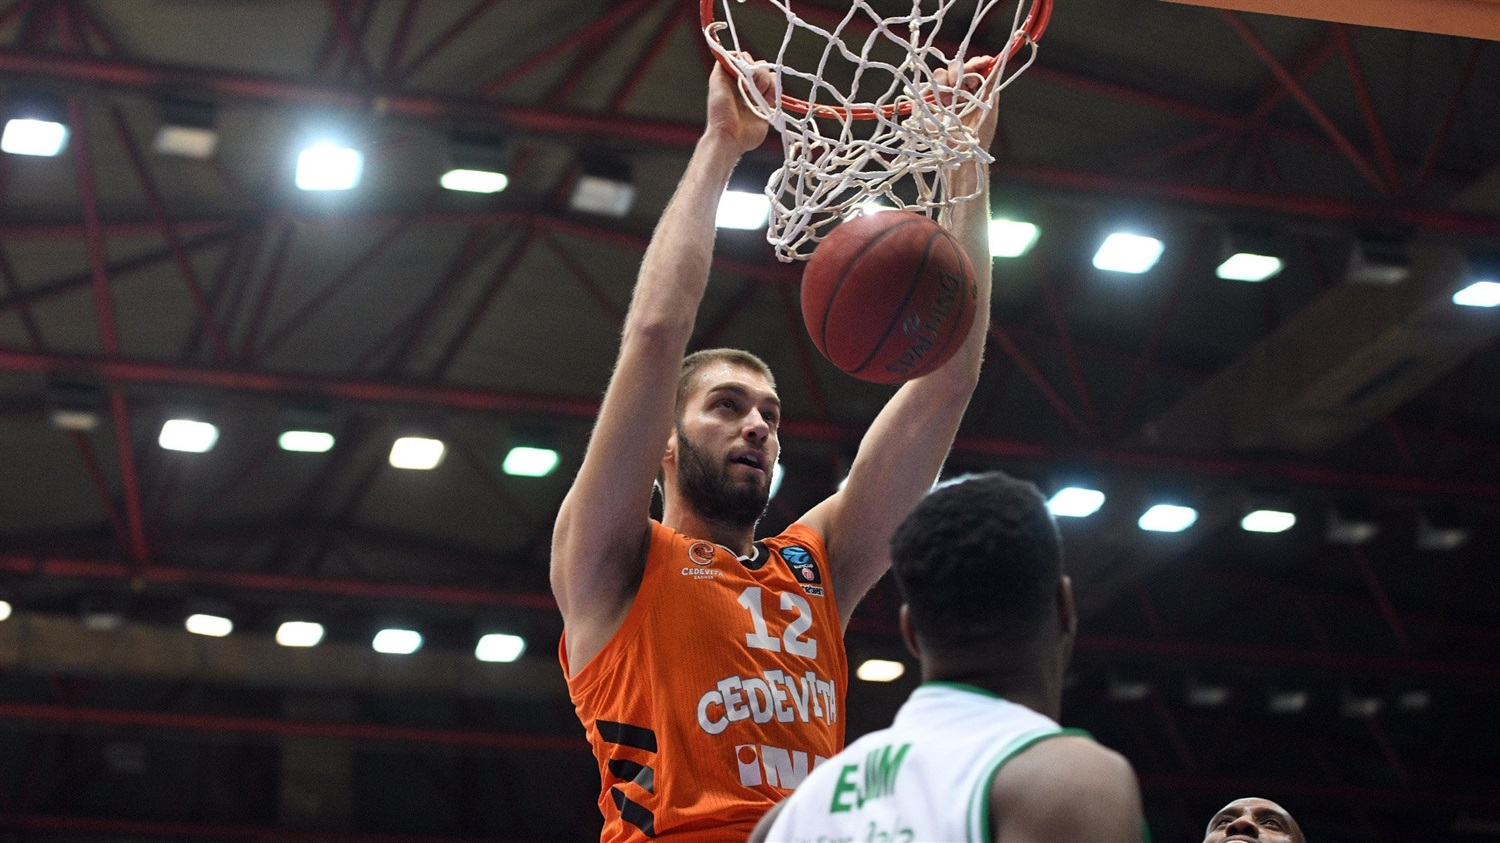 Lovro Buljevic - Cedevita Zagreb (photo UNICS) - EC18